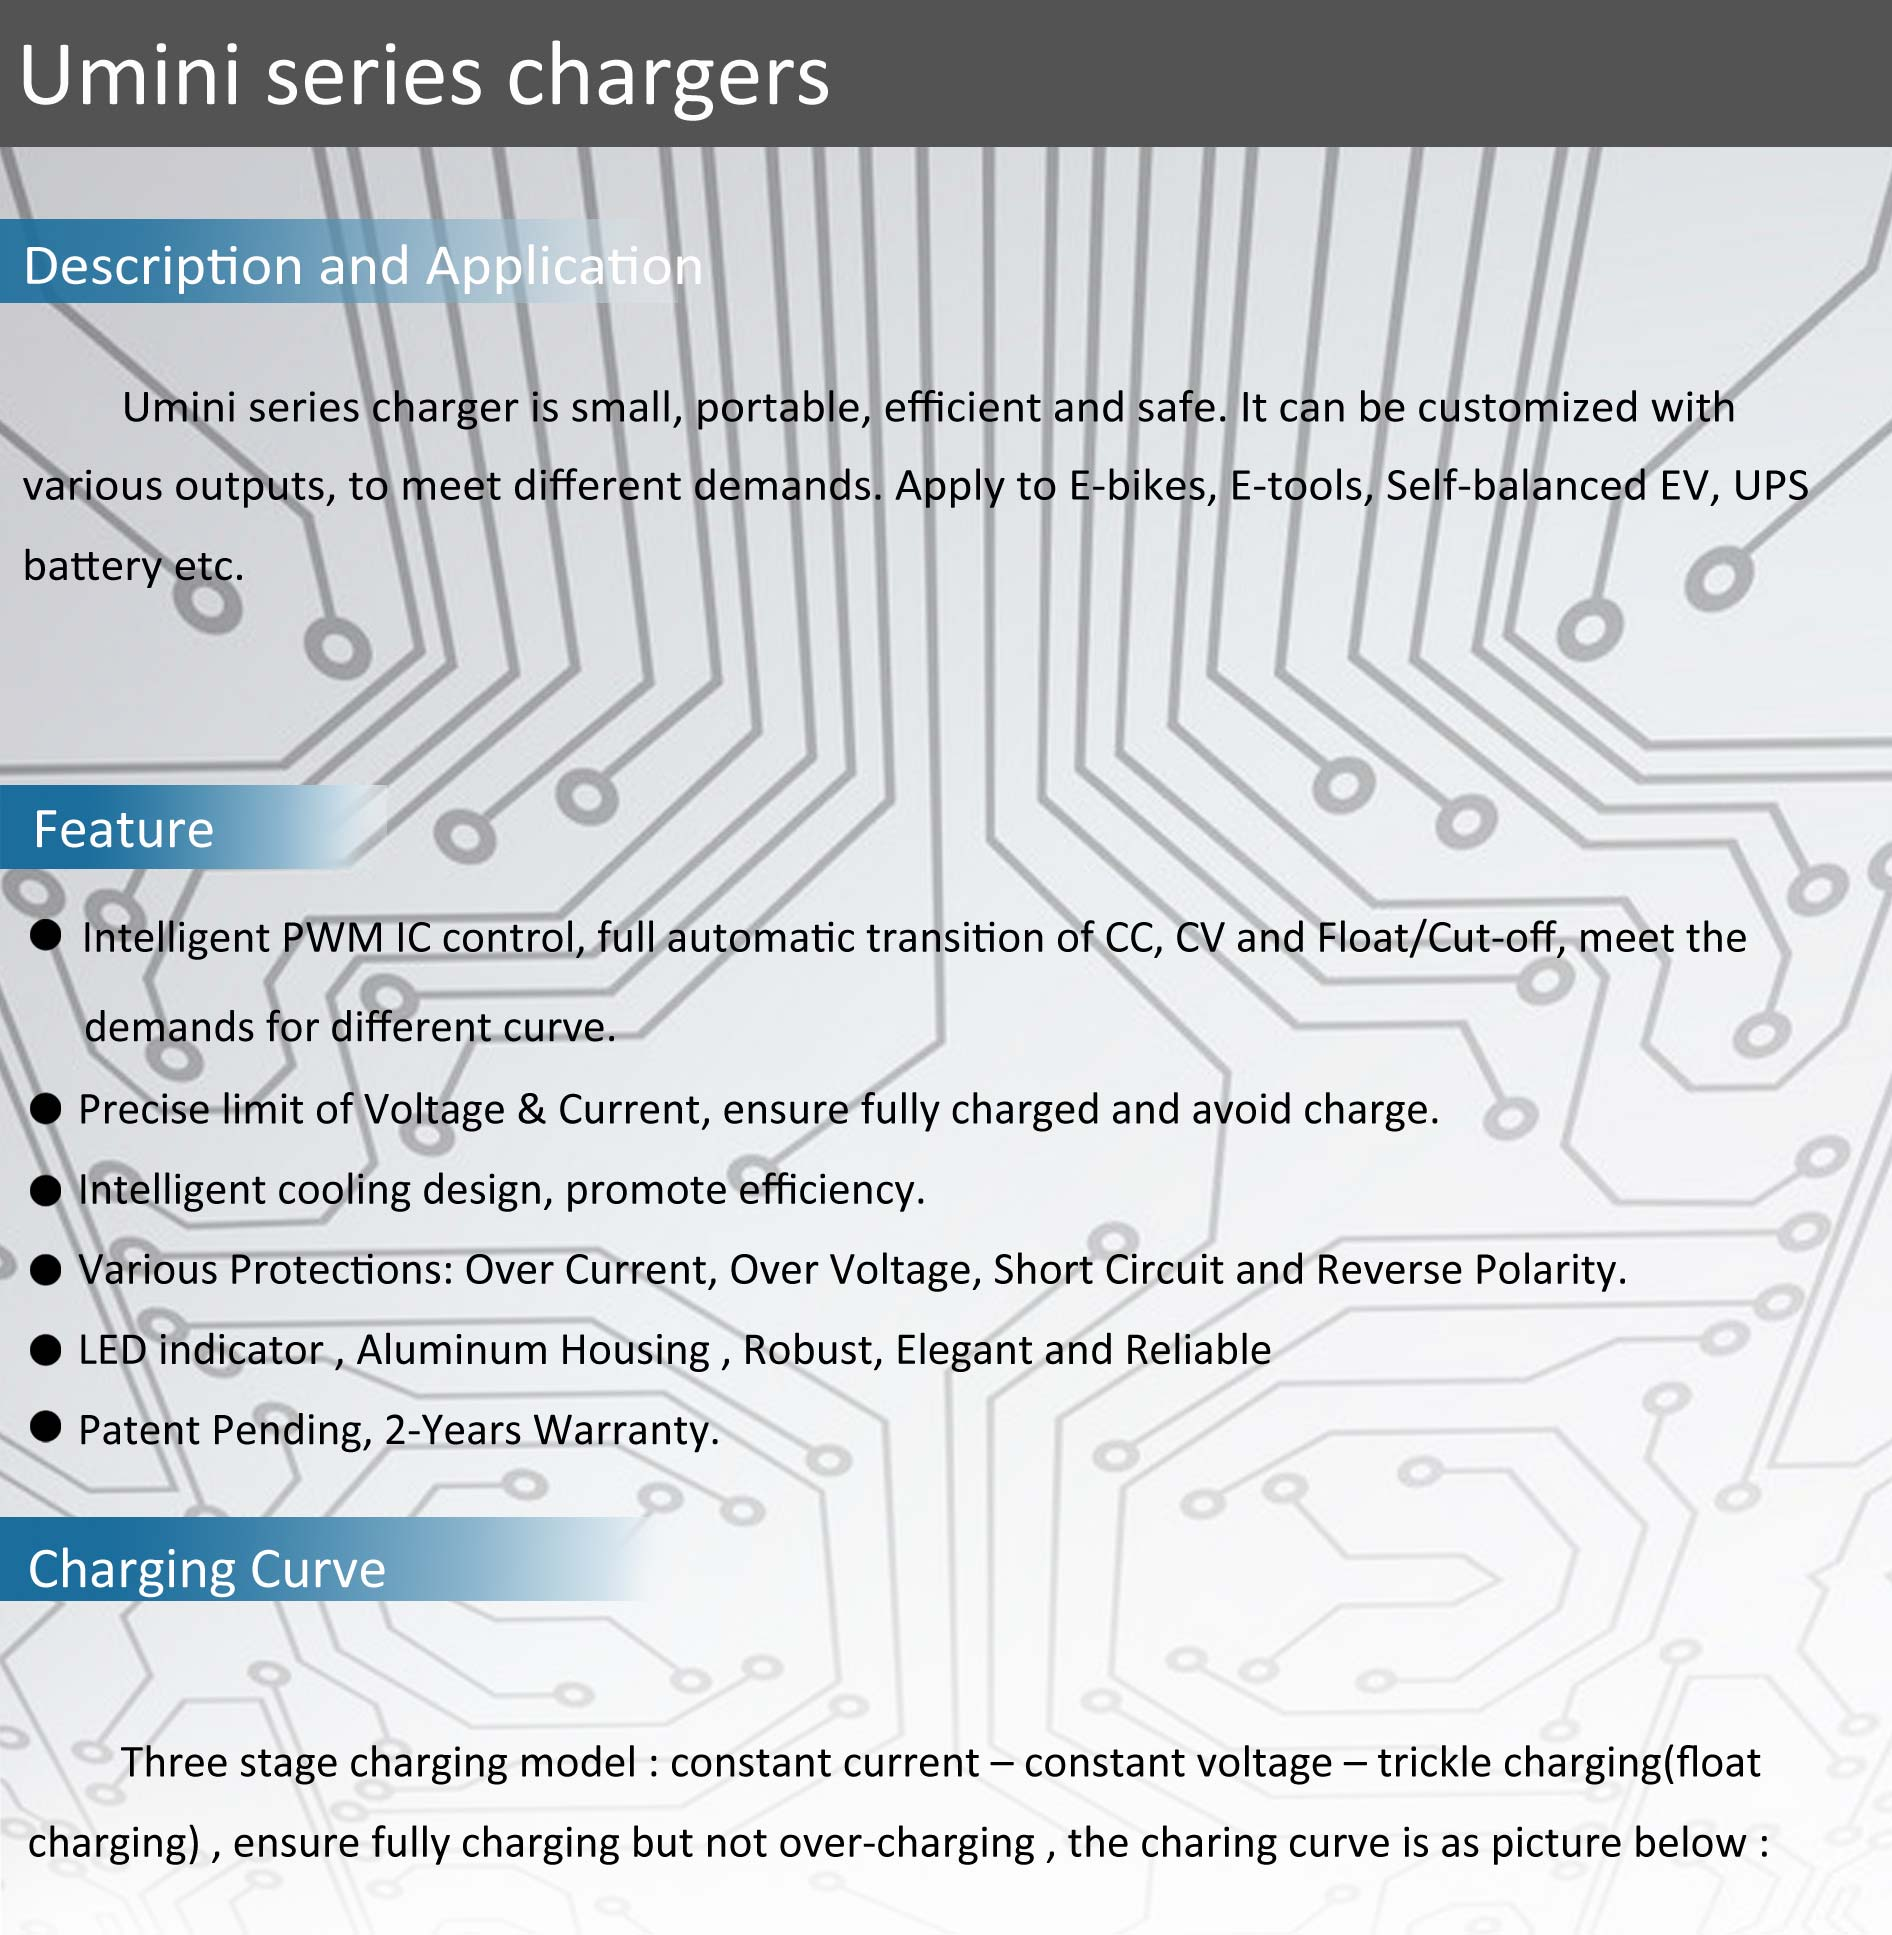 Umini Charger (120watts)